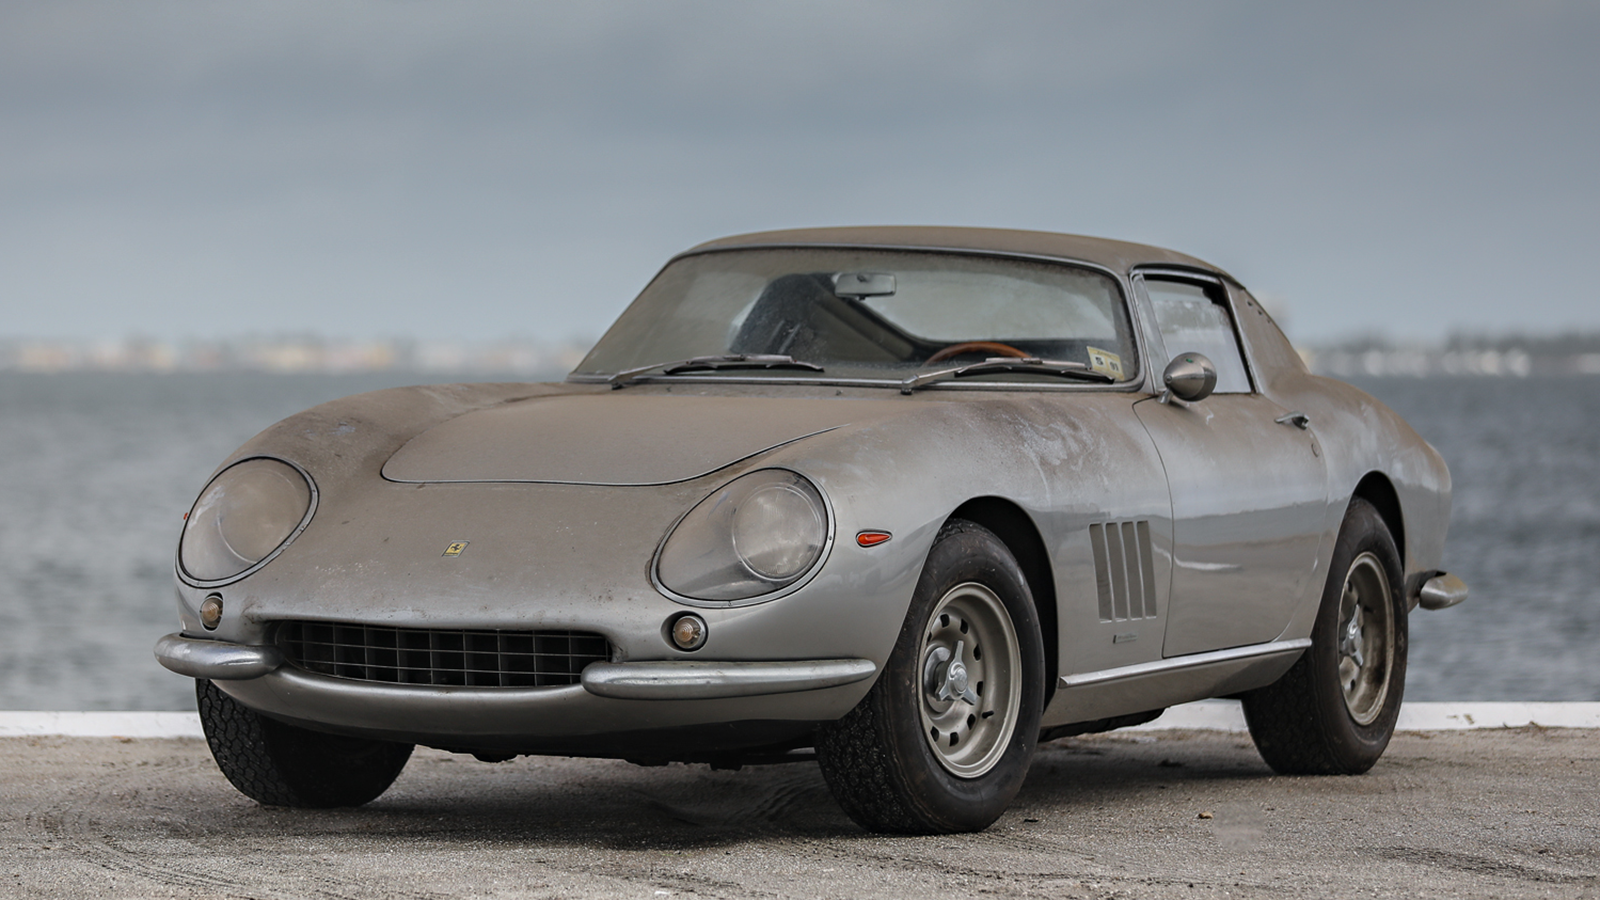 These forgotten Ferraris were all found in barns